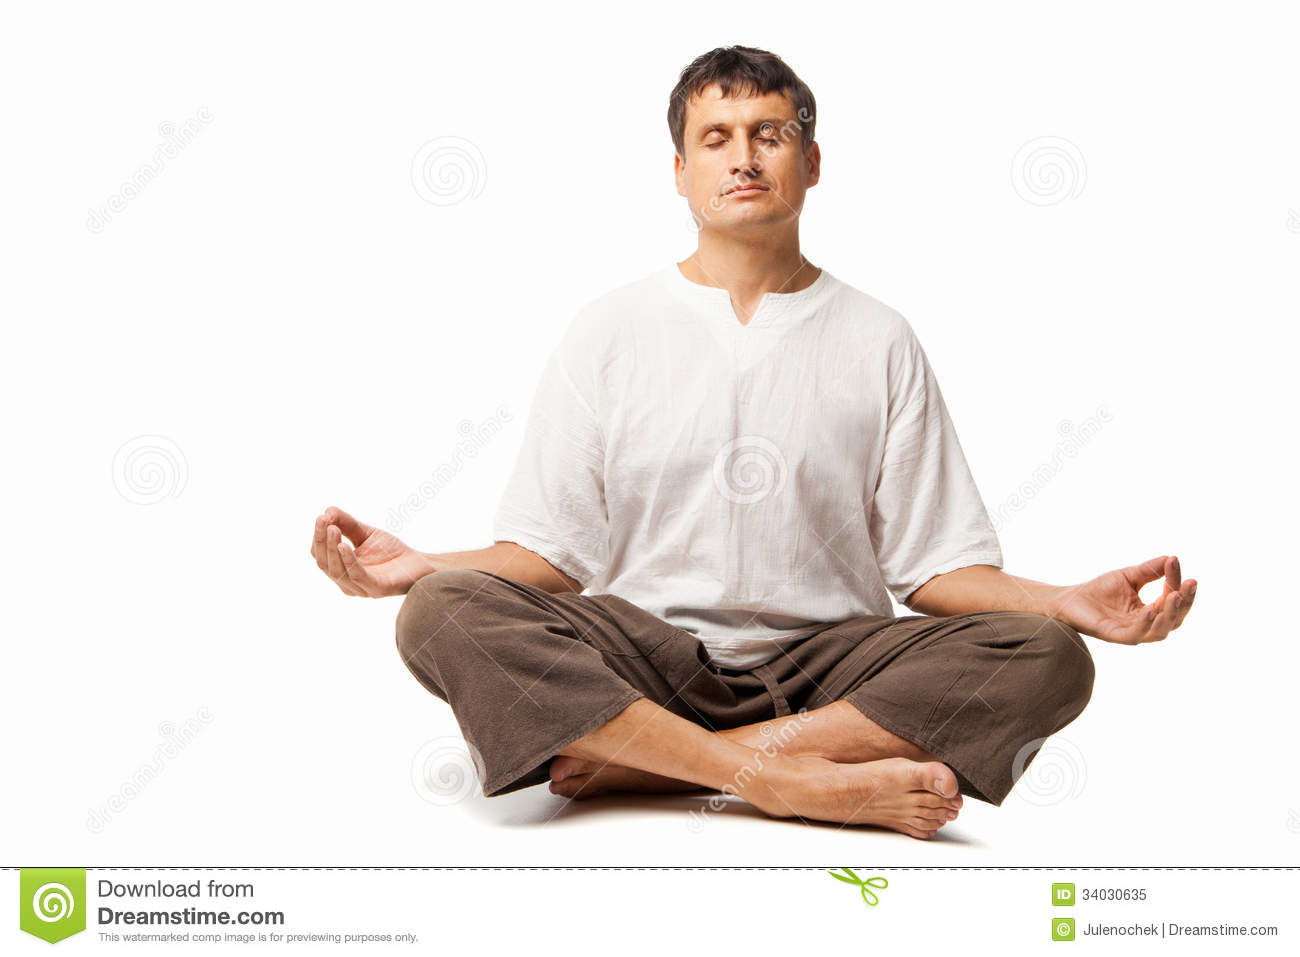 dating site for meditators About us dharmasmartcom health and beauty, meditators you've probably tried the usual places – singles bars, the gym, online dating sites.